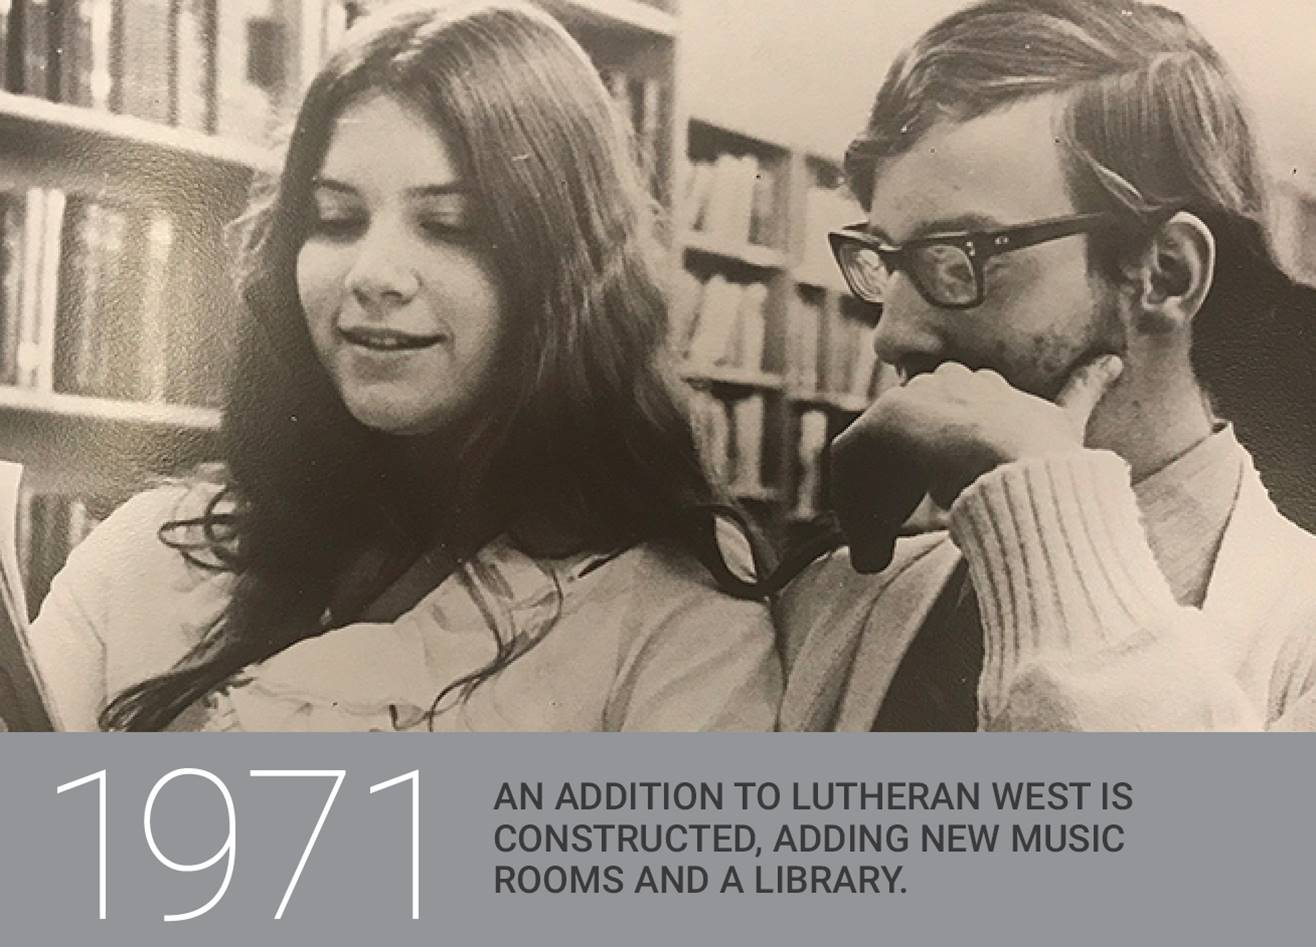 History-1971-Lutheran-West-Builds-Library